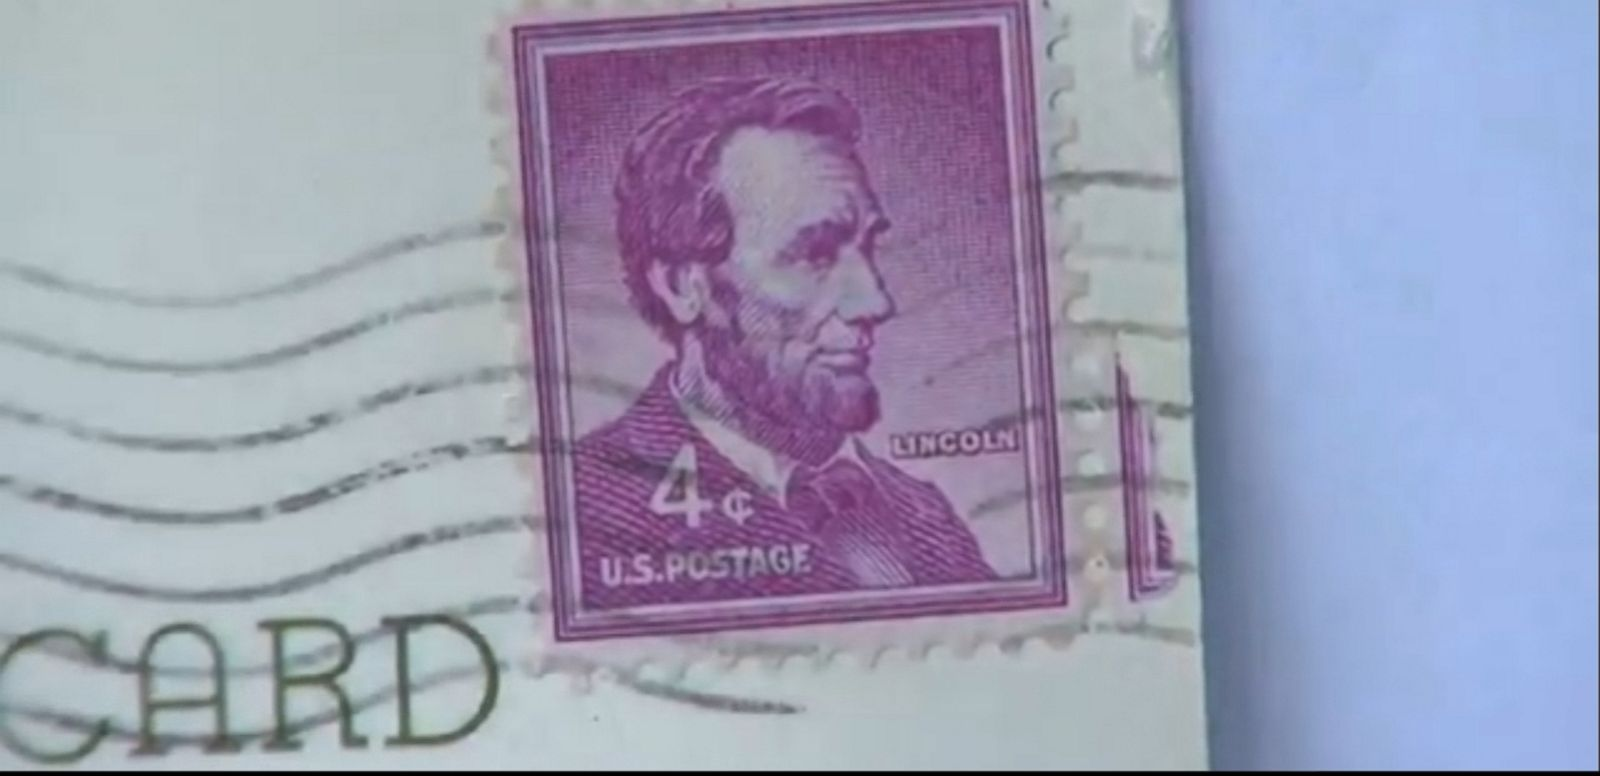 VIDEO: The postcard was mailed to the Connecticut family in 1963 by an aunt who has since passed away.